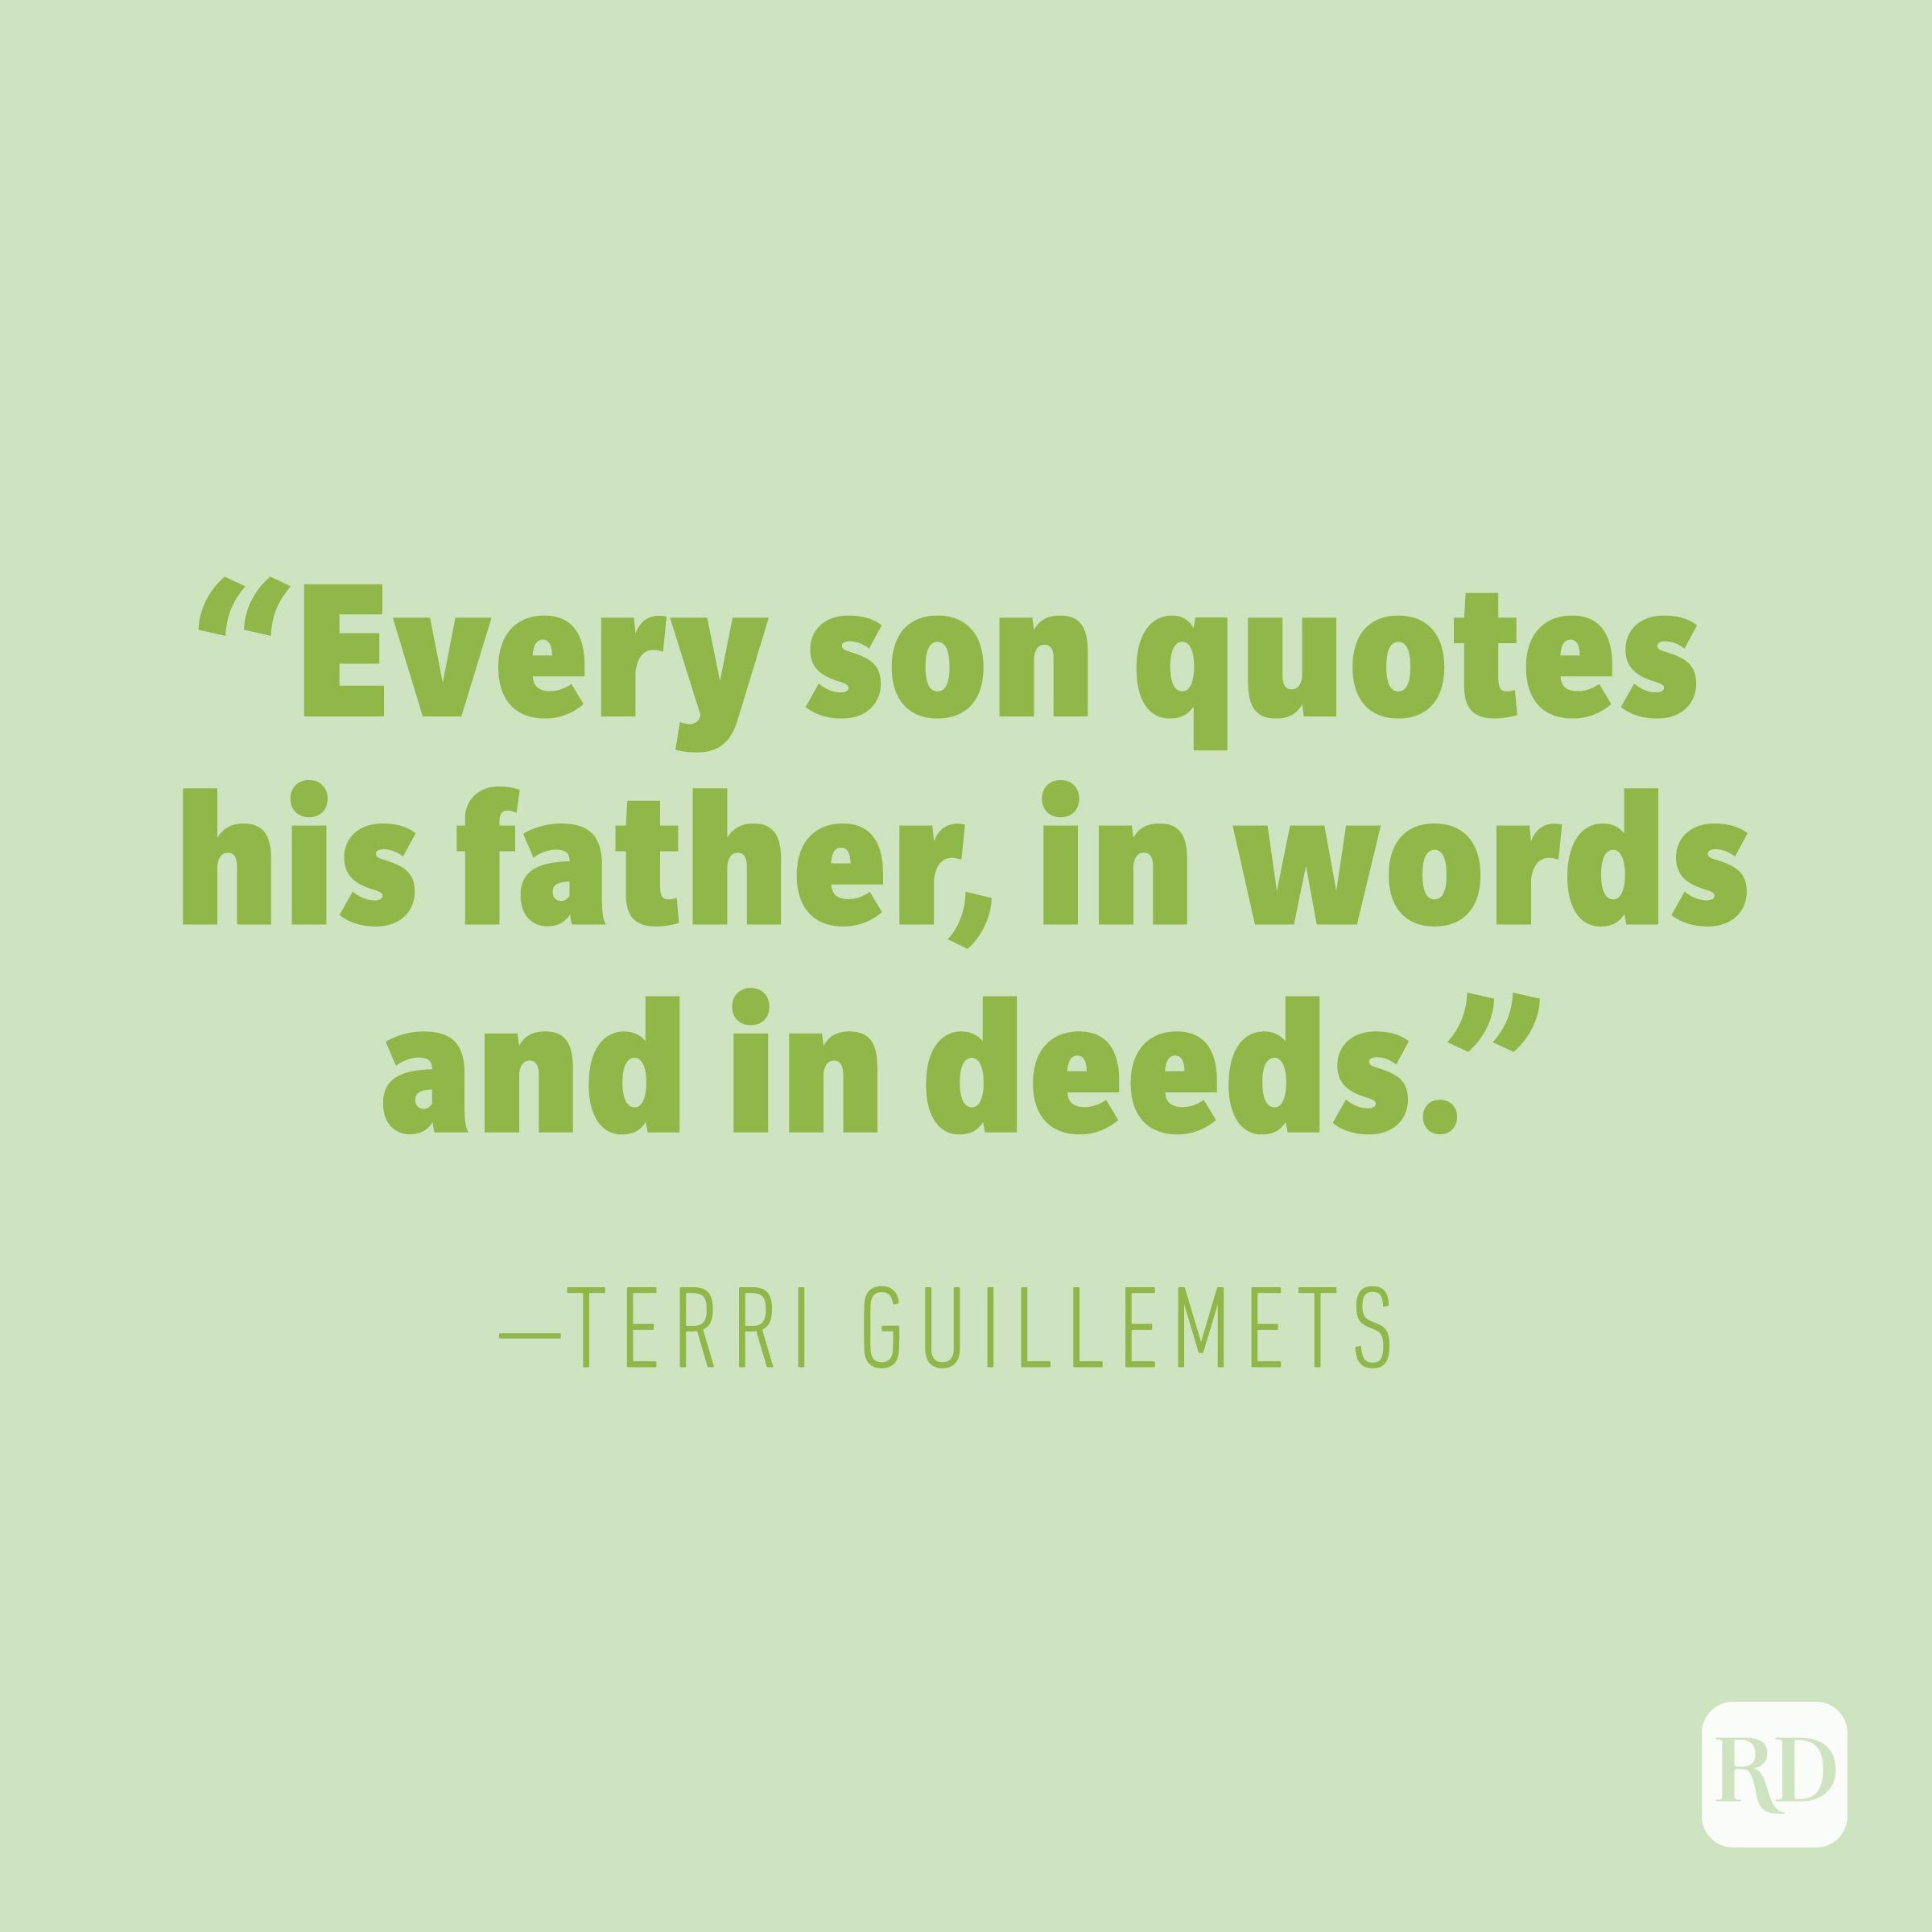 """Every son quotes his father, in words and in deeds."" —TERRI GUILLEMETS"